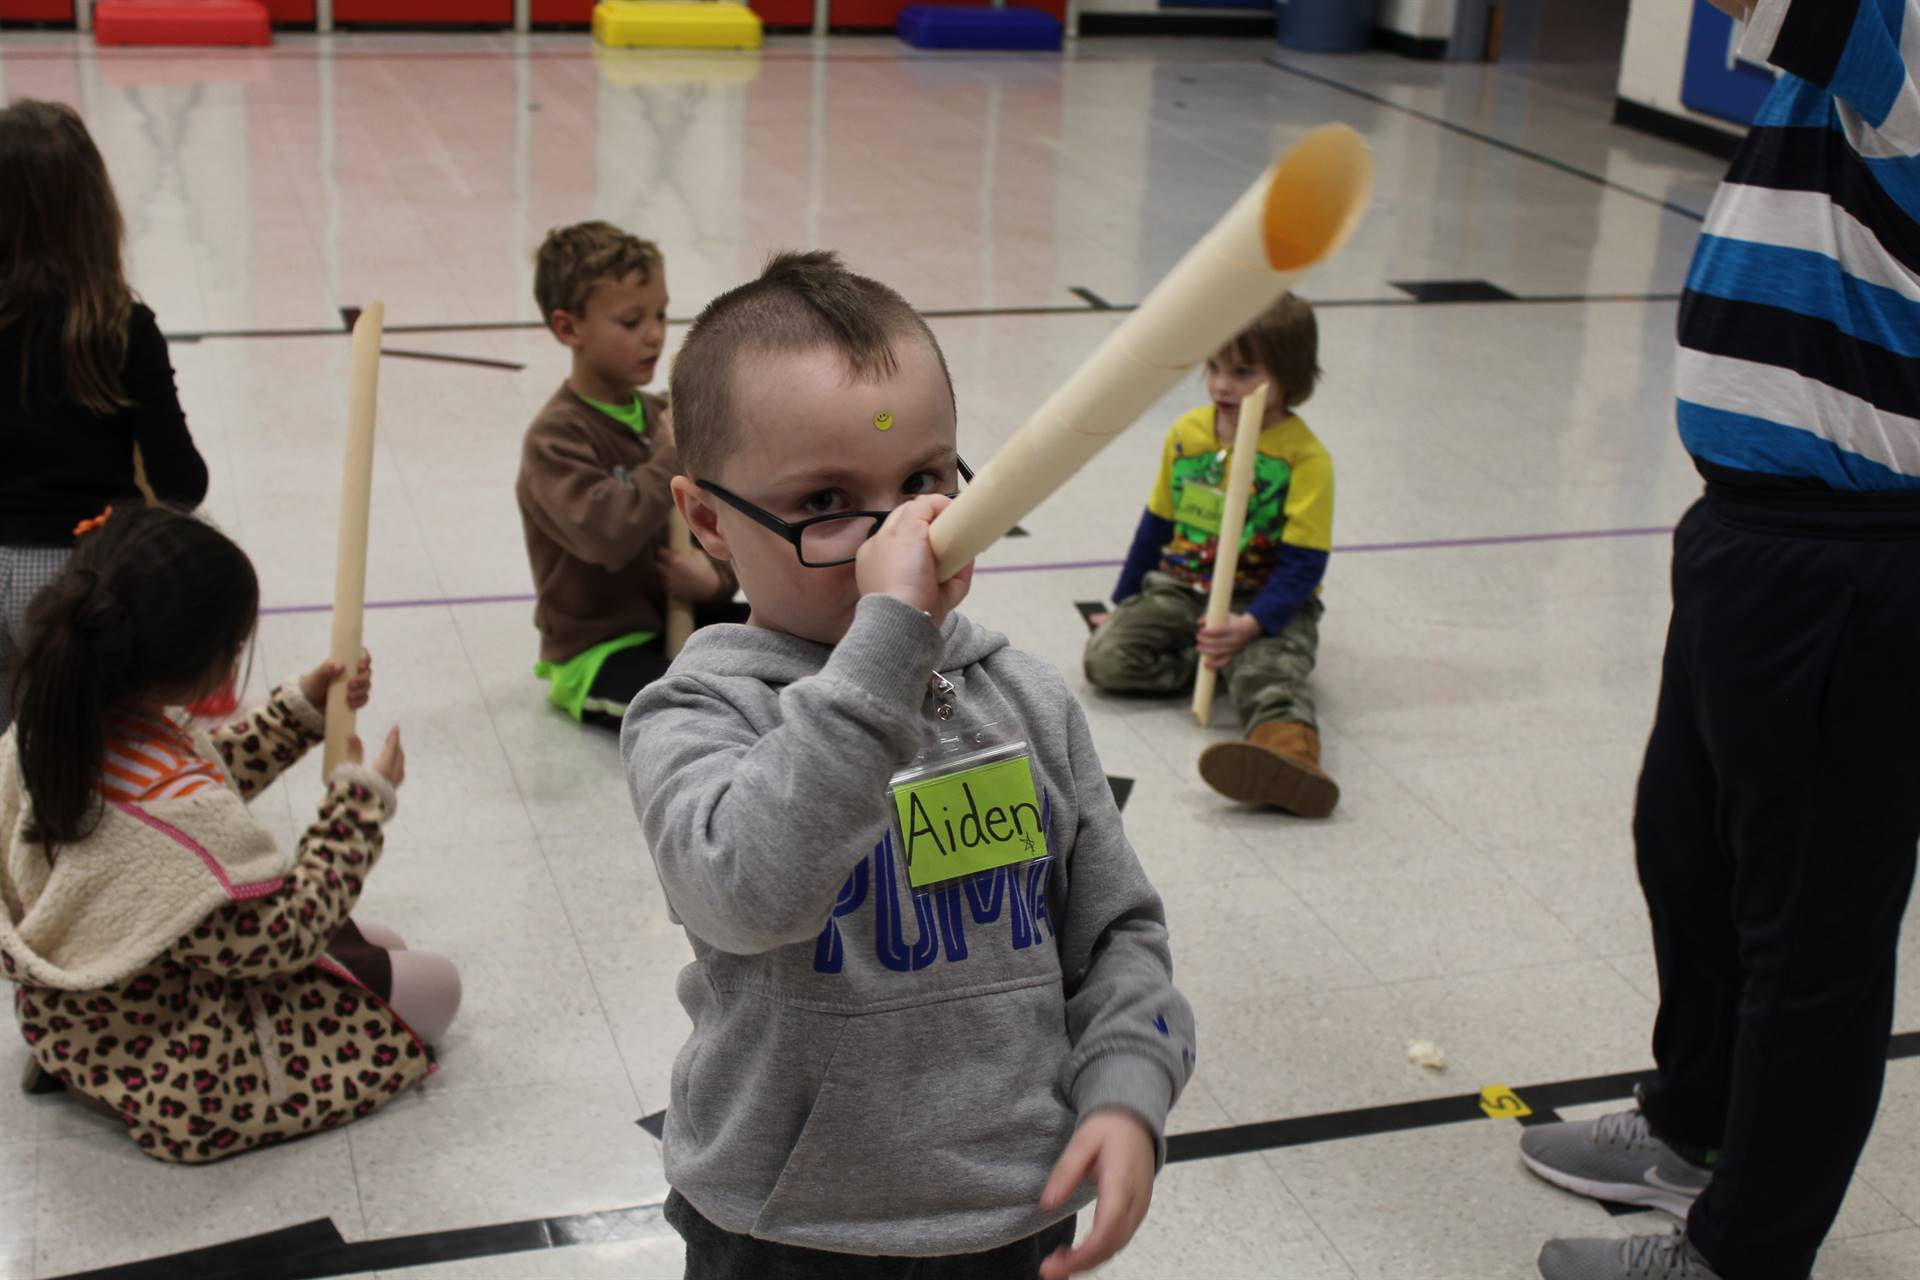 Students make Marshmallow Blasters in the gym